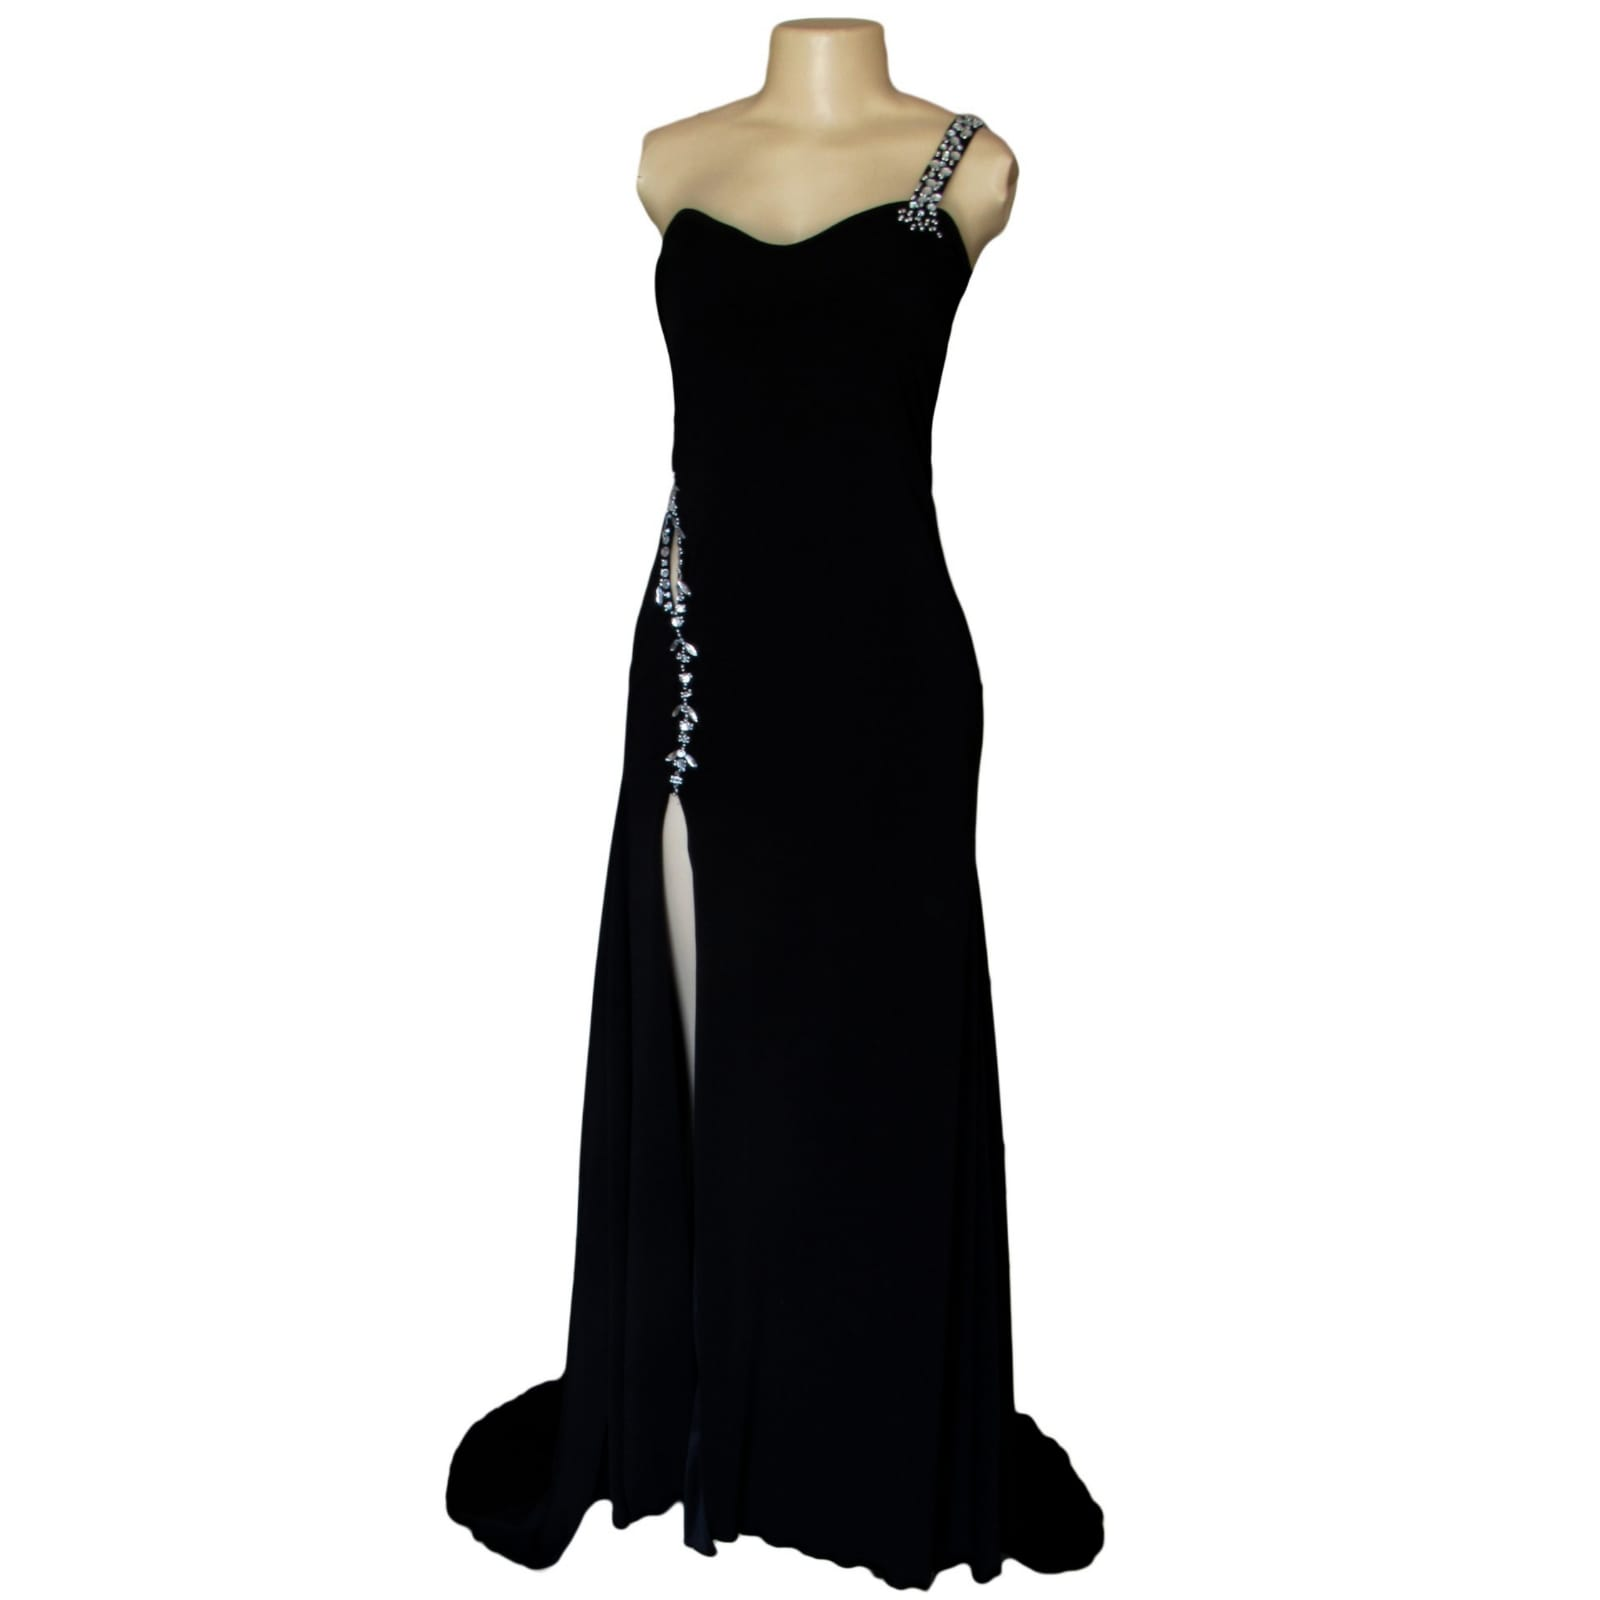 Black long formal dress with a low open back 3 black long formal dress with a low open back. Shoulder strap design detailed with silver beads and a slit.